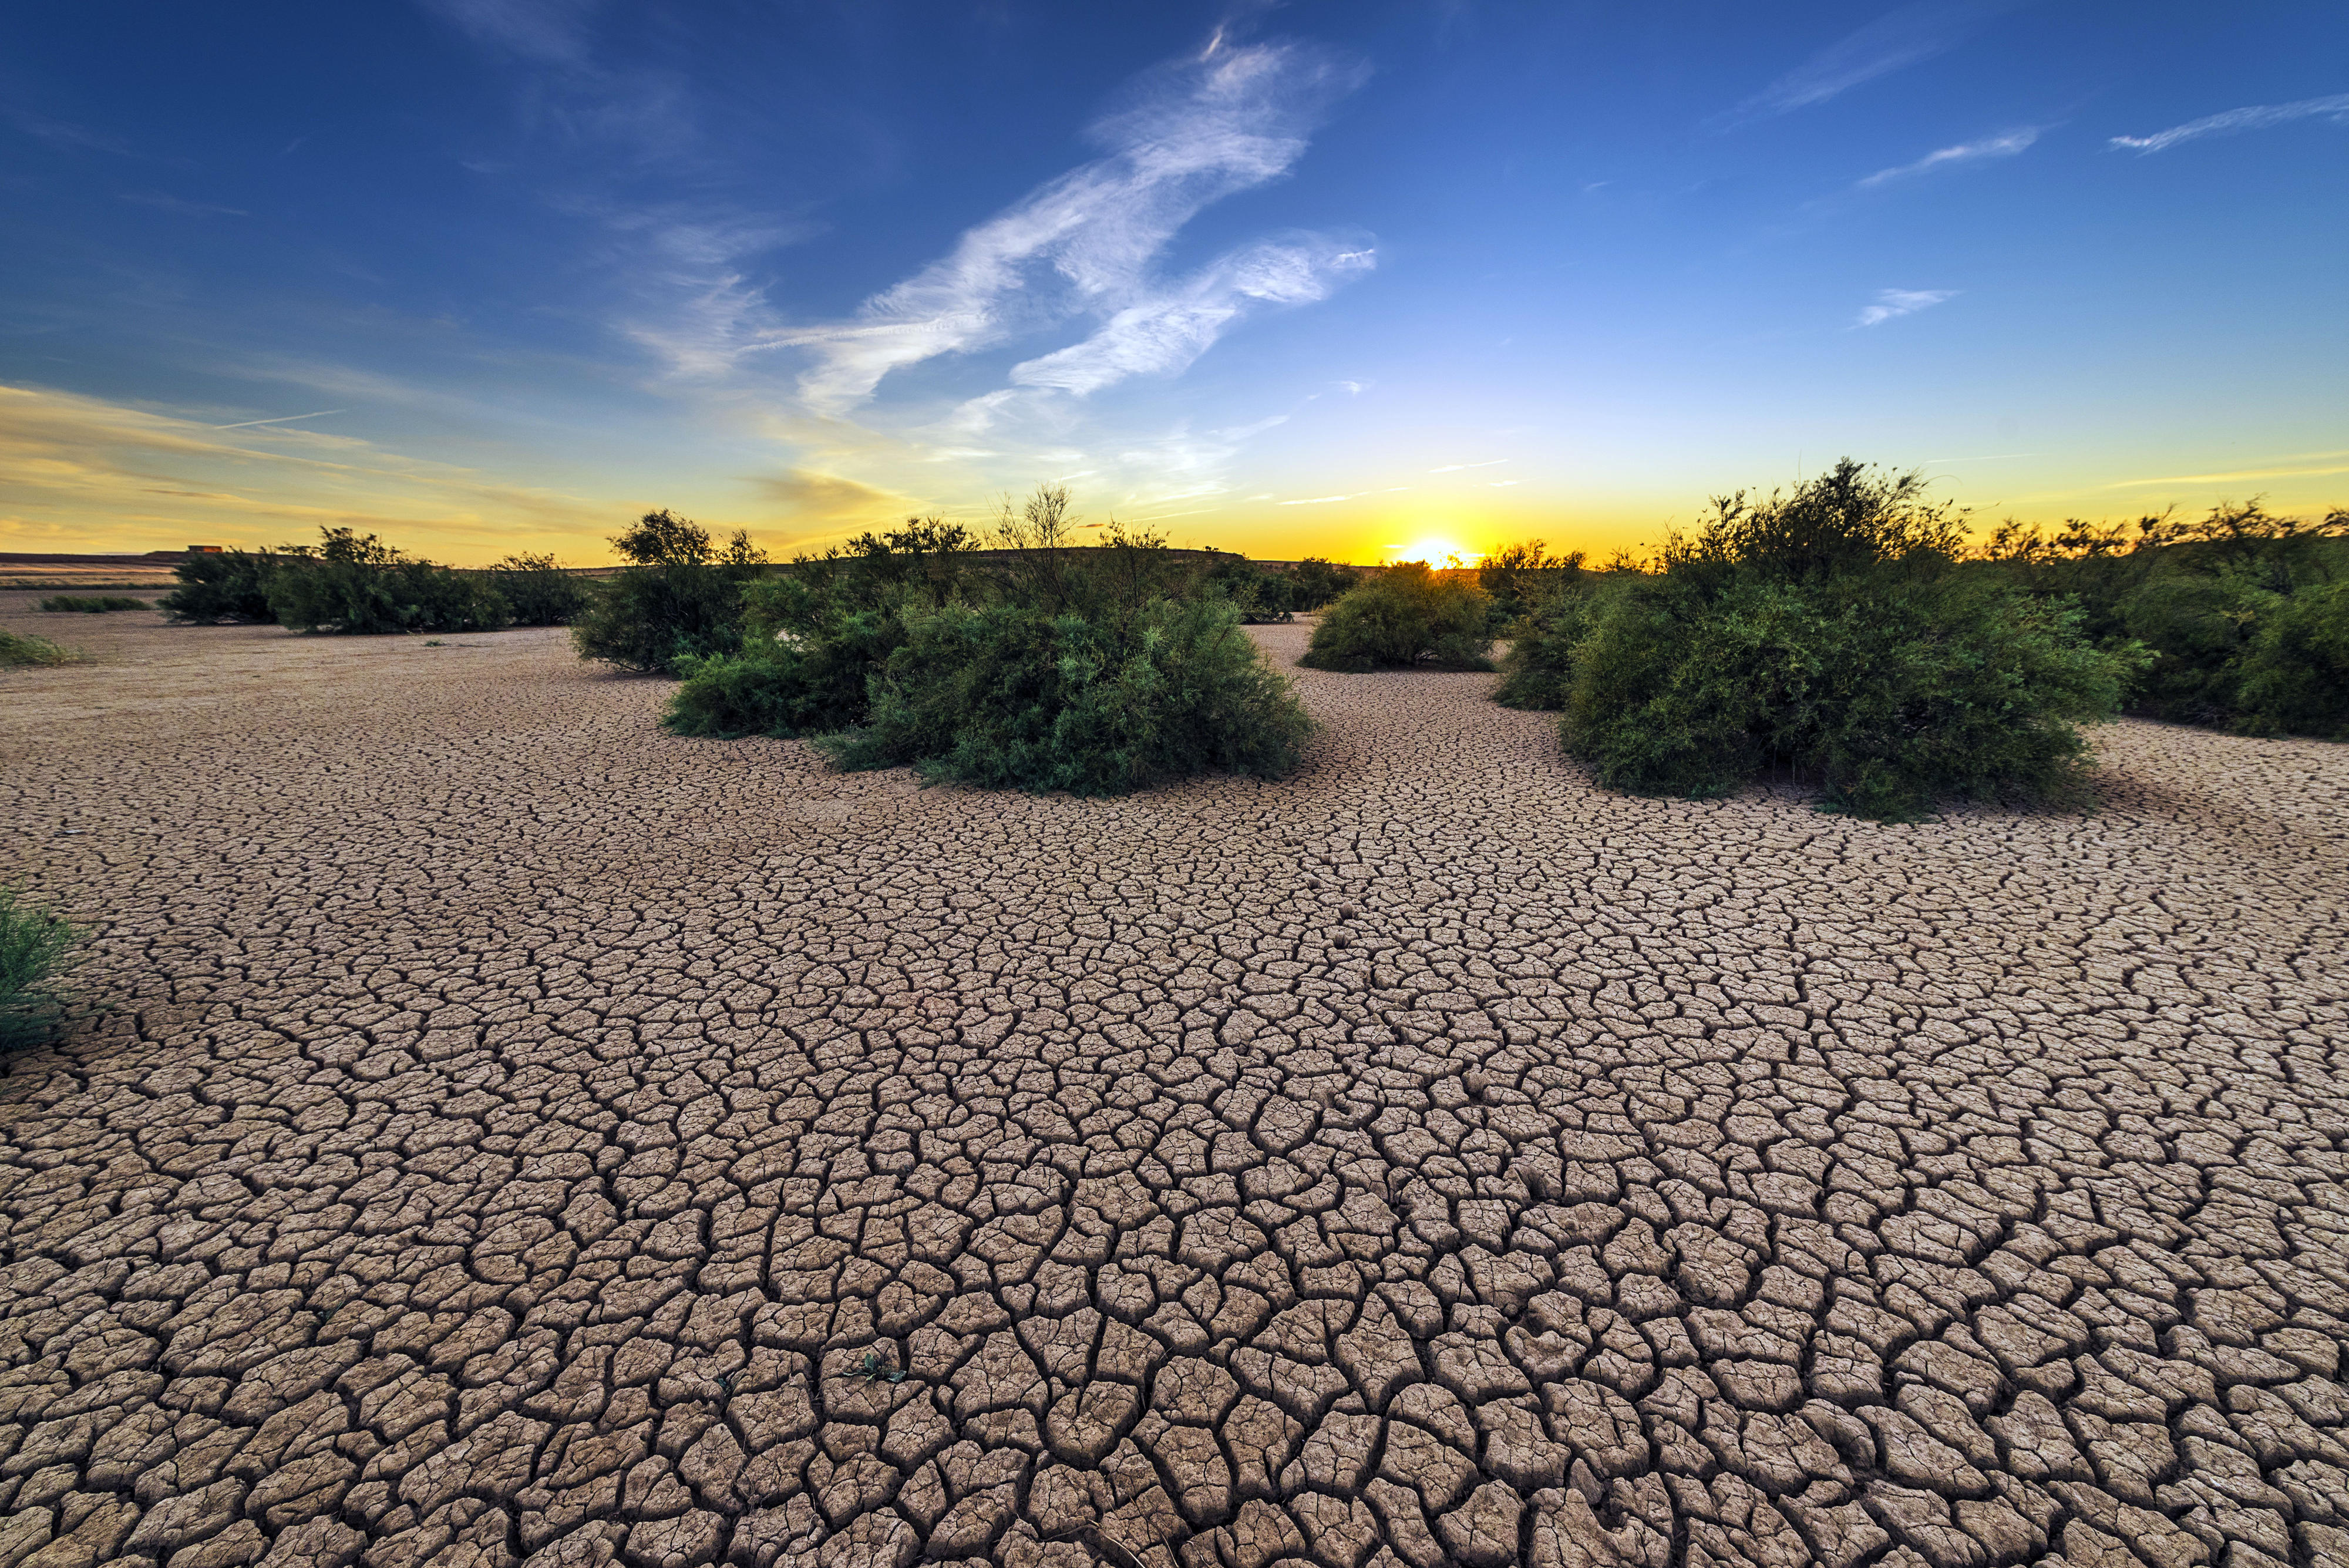 Water scarcity and drought are among the serious consequences of climate change.